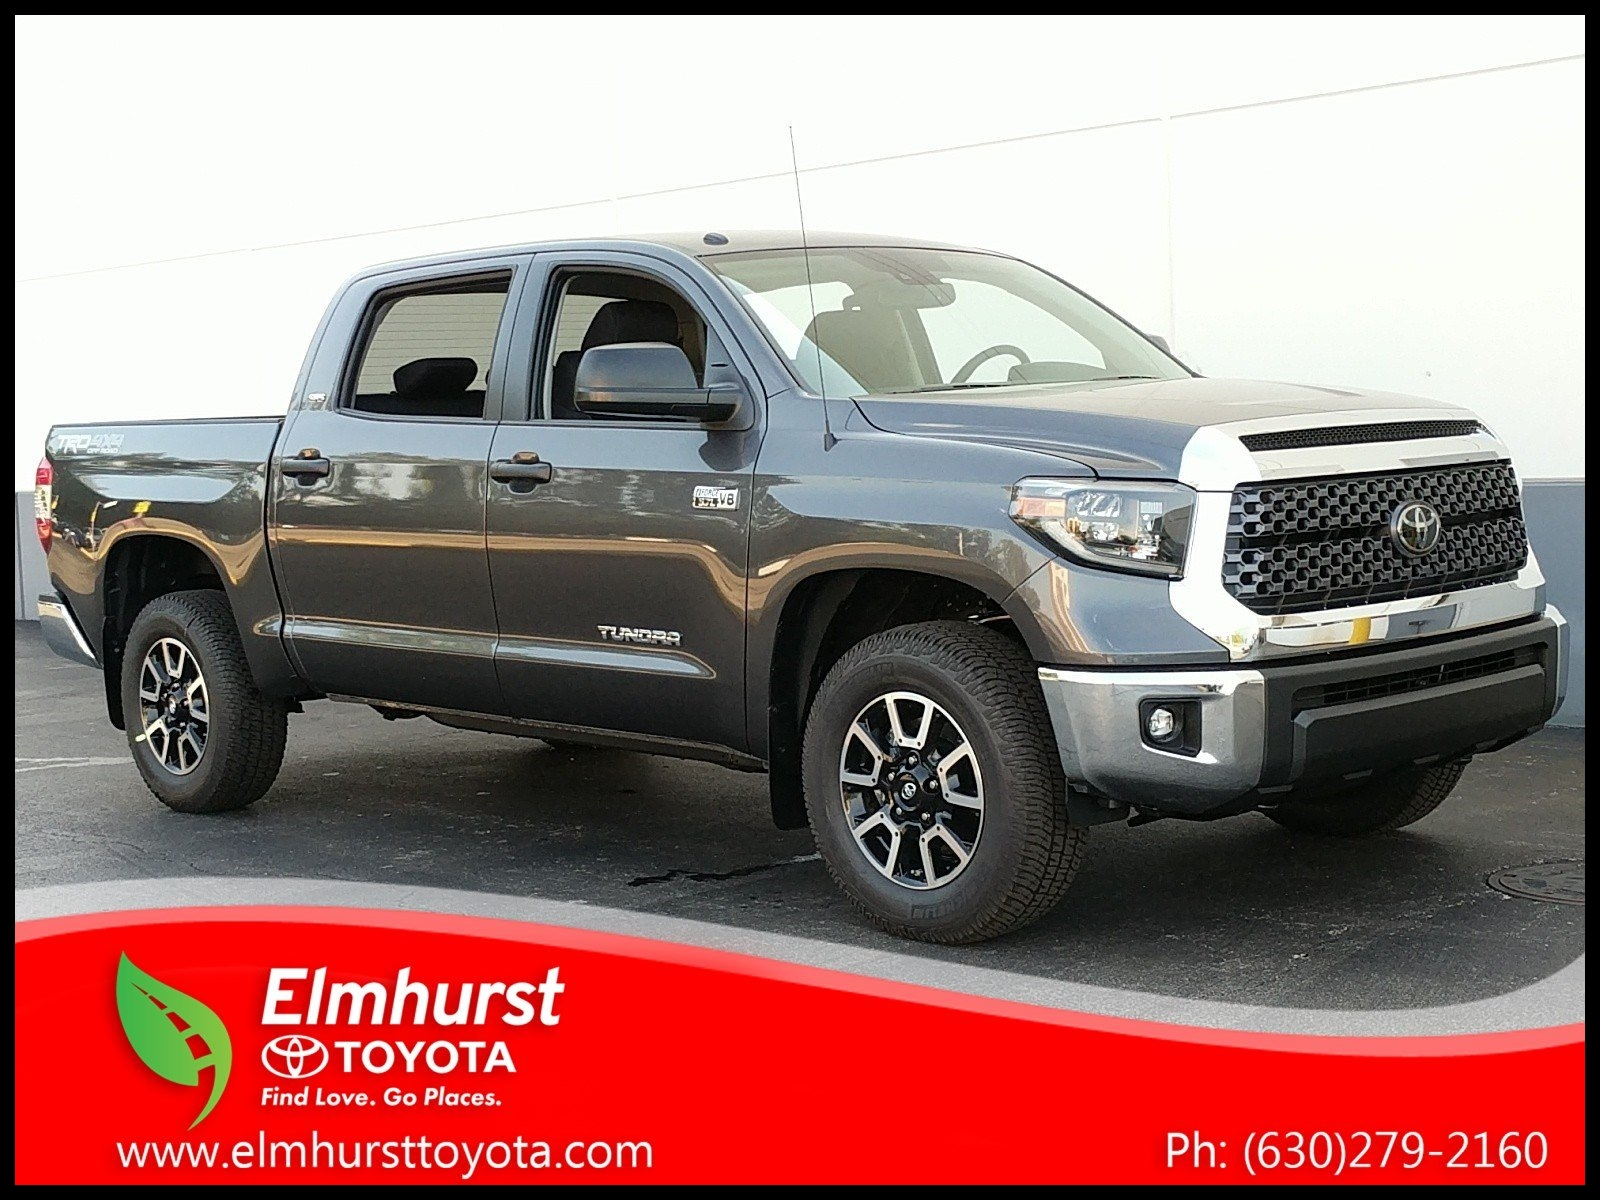 New 2019 Toyota Tundra SR5 Crew Cab Pickup 2003 toyota tundra owners manual  and warranty toyota owners ...